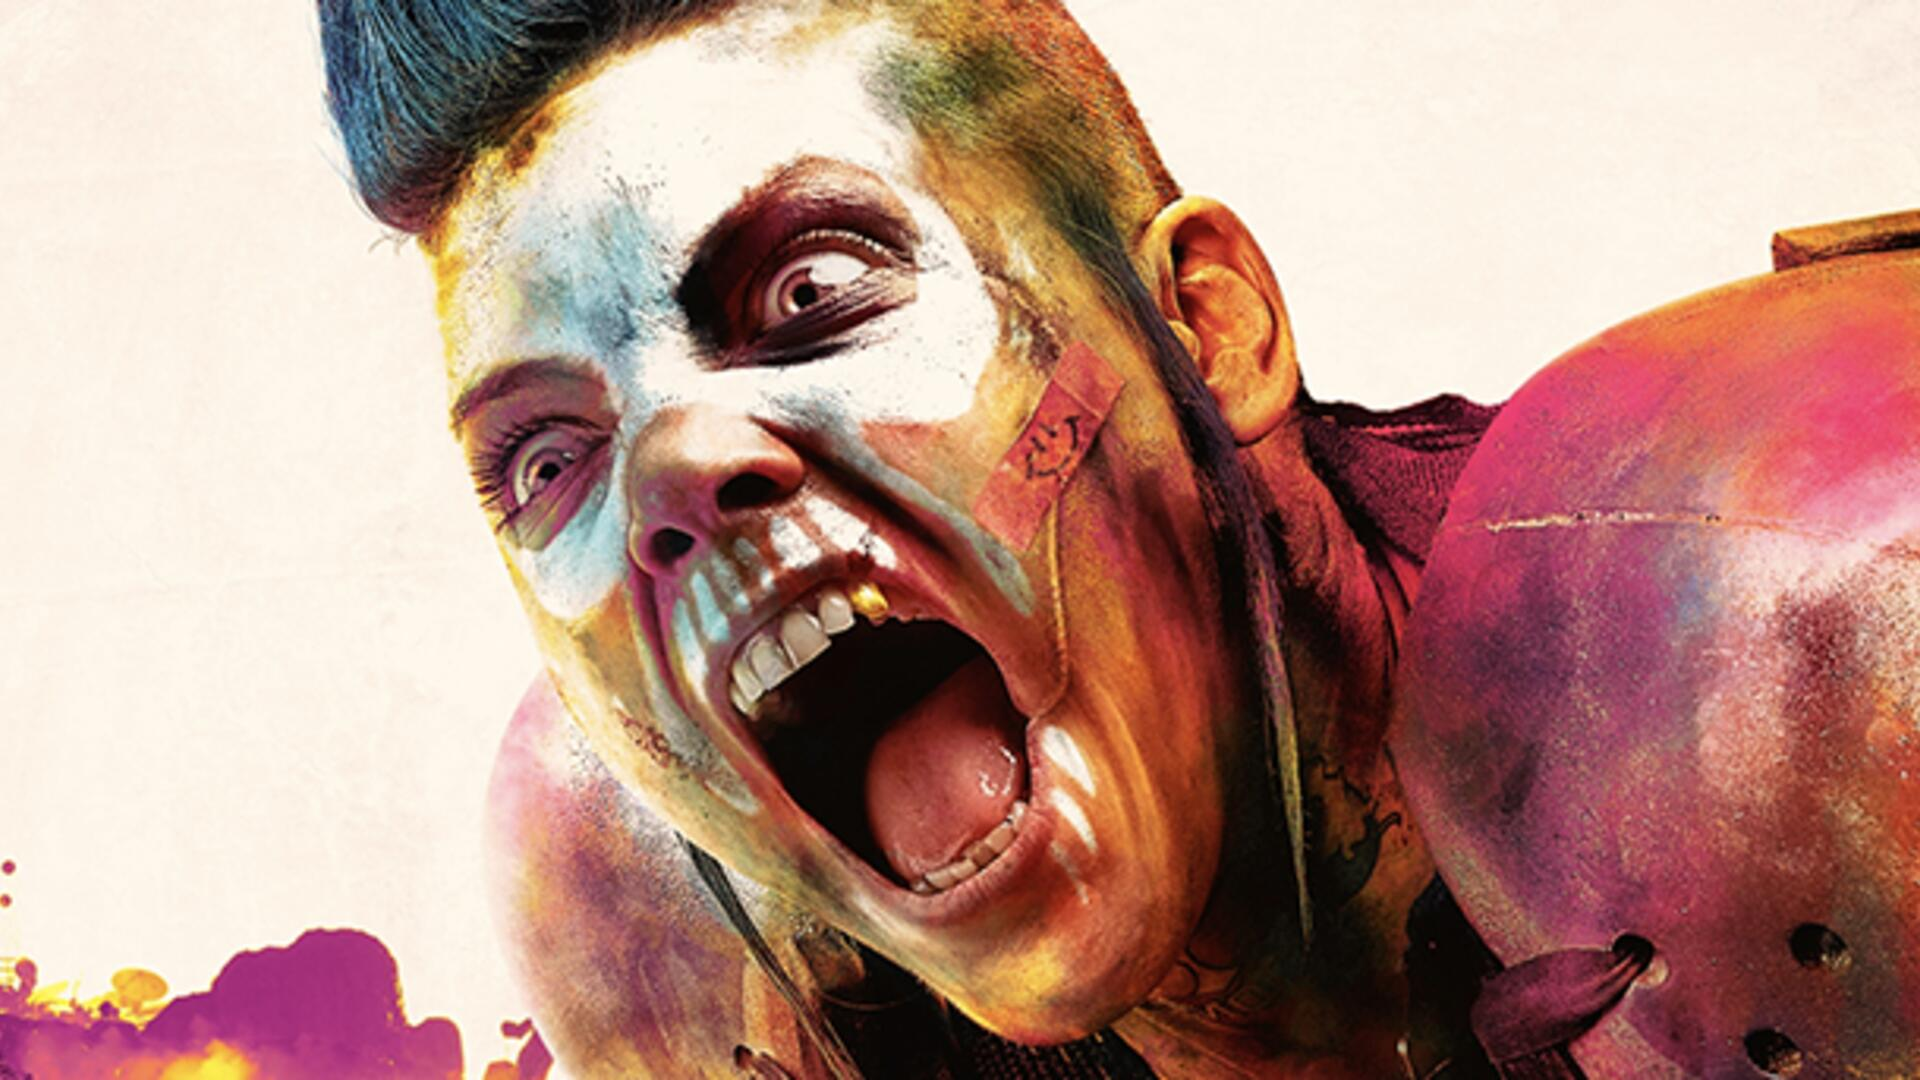 Rage 2 Abilities - How to Unlock Every Ability in Rage 2